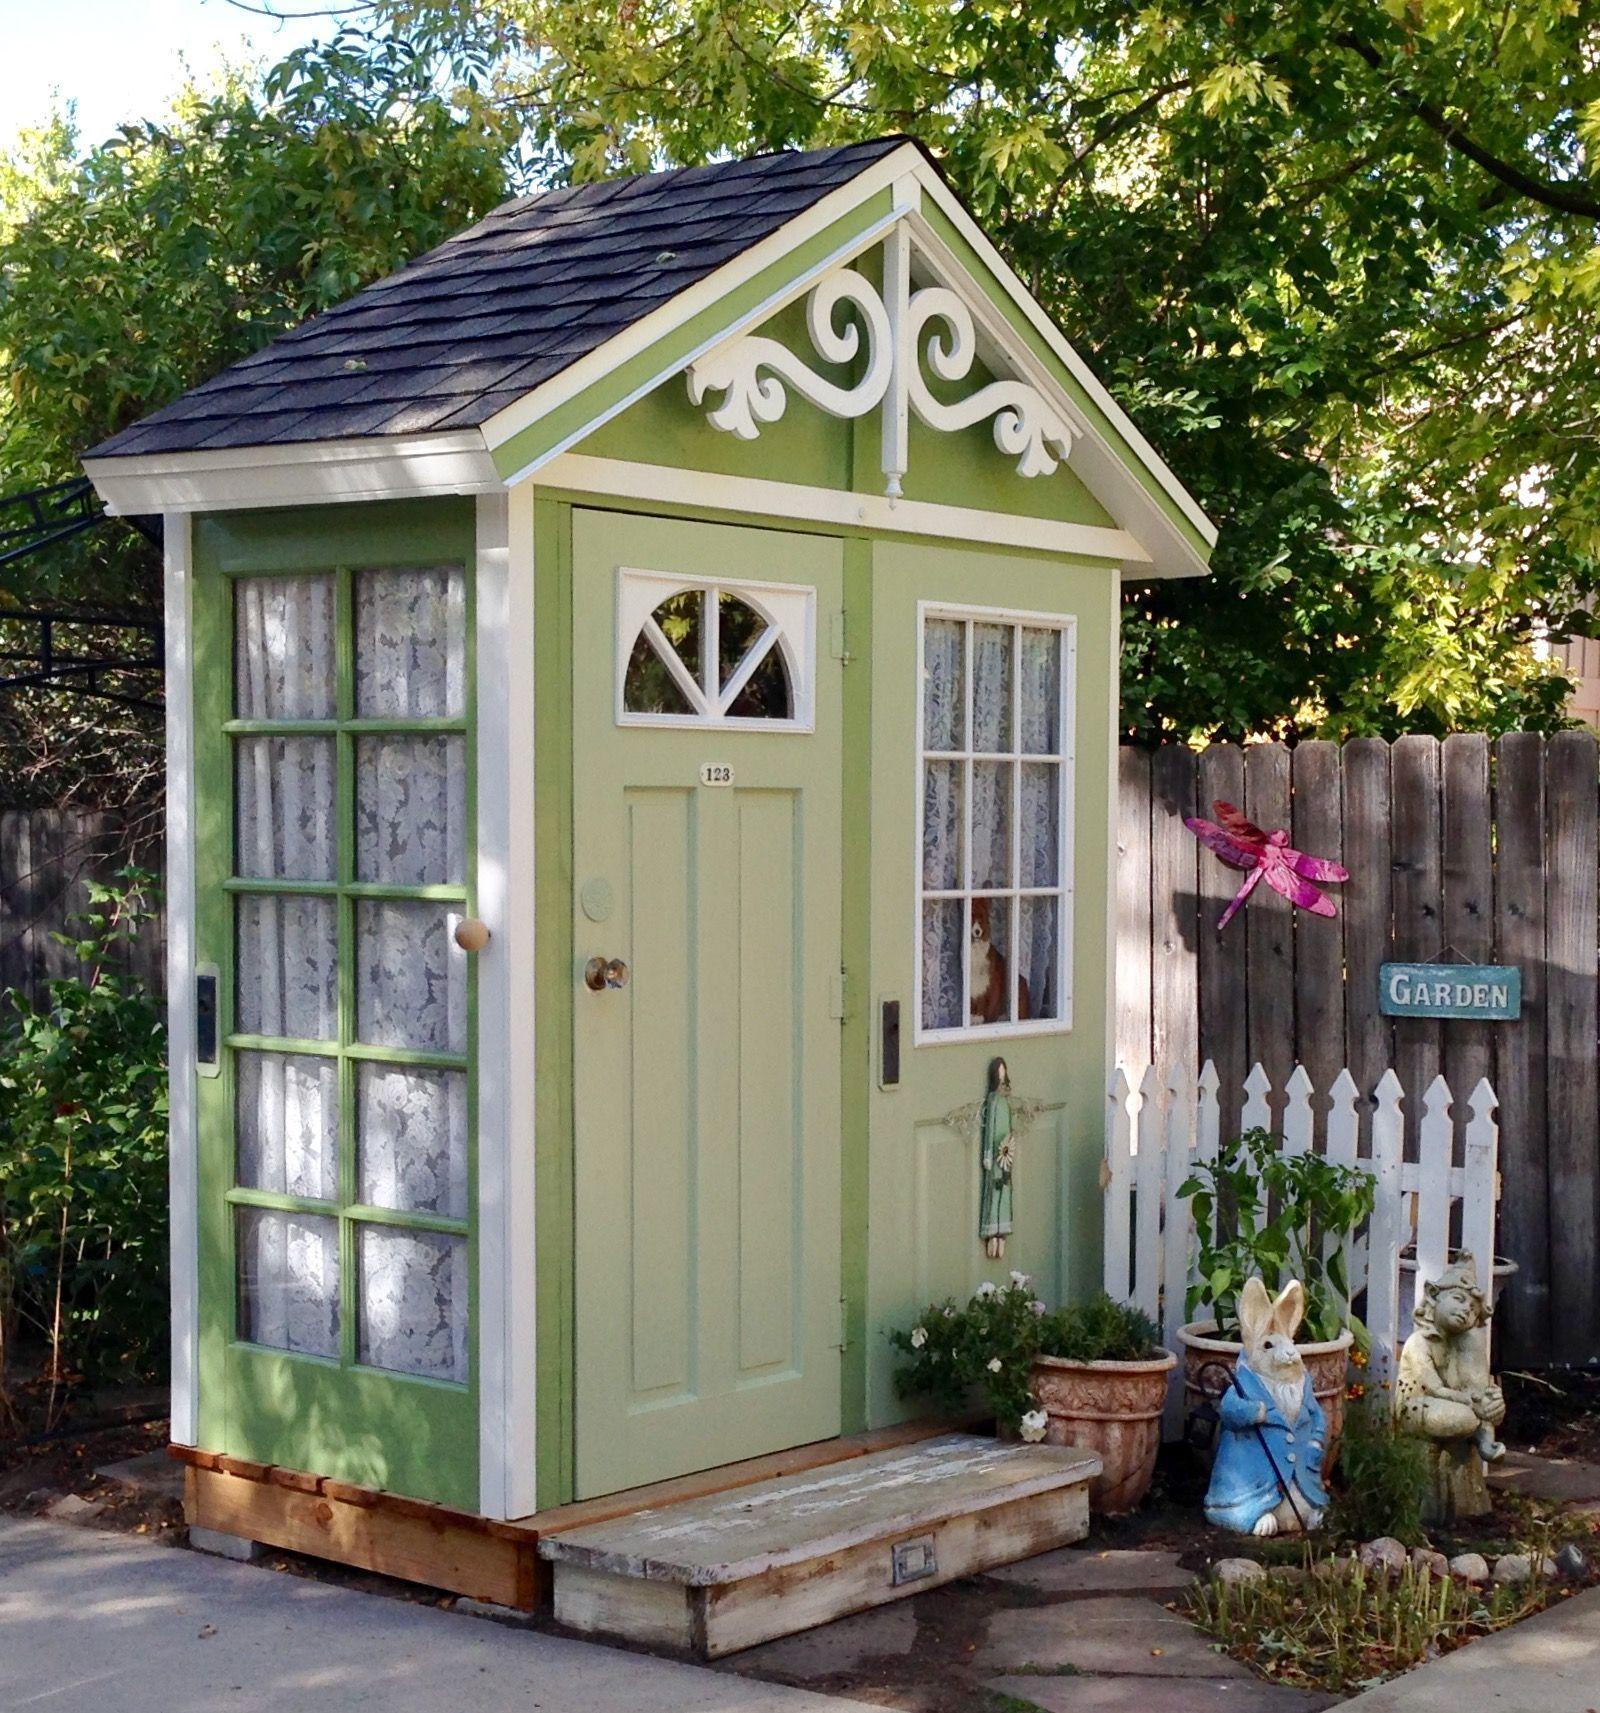 my garden shed. my husband built this out of old doors. i love it